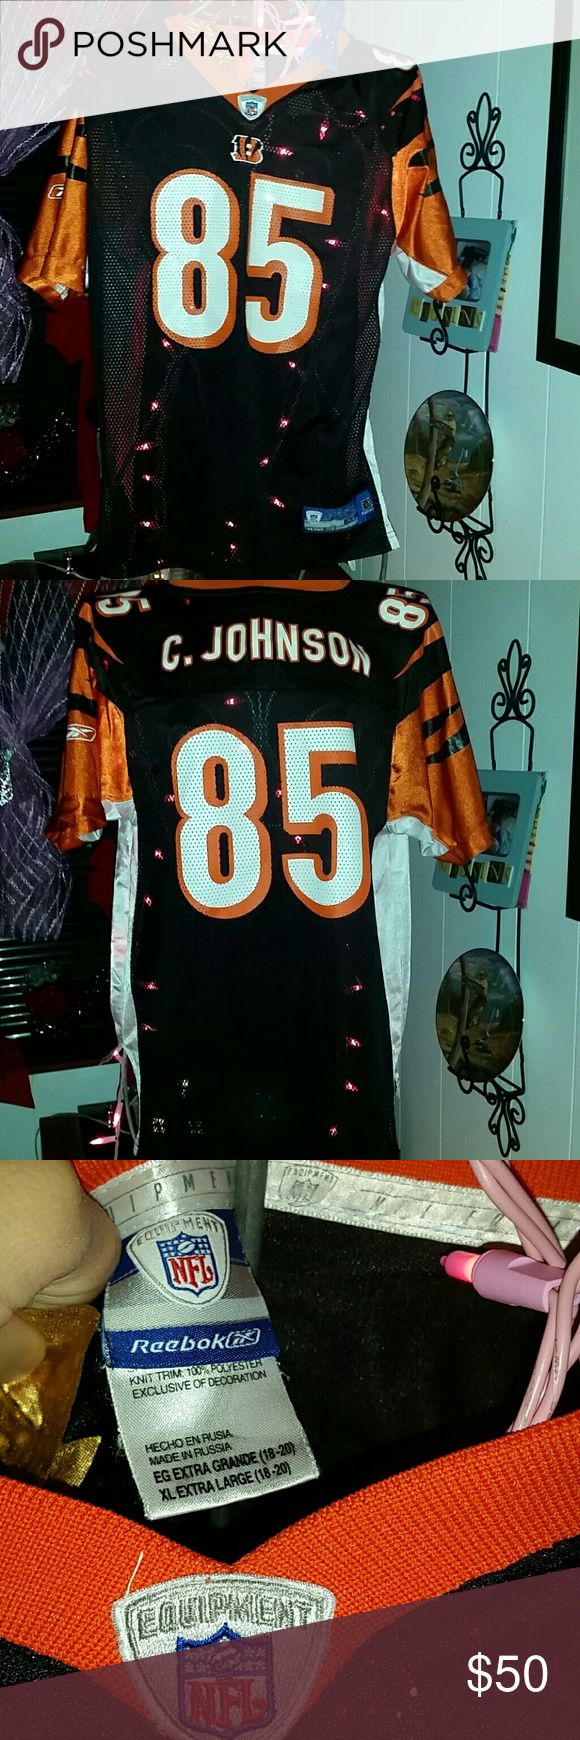 Authentic Ocho Rios football jersey euc NFL reebok 85 C. Johnson otherwise known as Ocho cinco. Collectors jersey. It's an xlarge but seems more like a large. But idk,these kinda things stretch. That's me in last pic to give an idea. I'm in a small and these are pjs on me but I cd def get away with wearing out. nfl Shirts